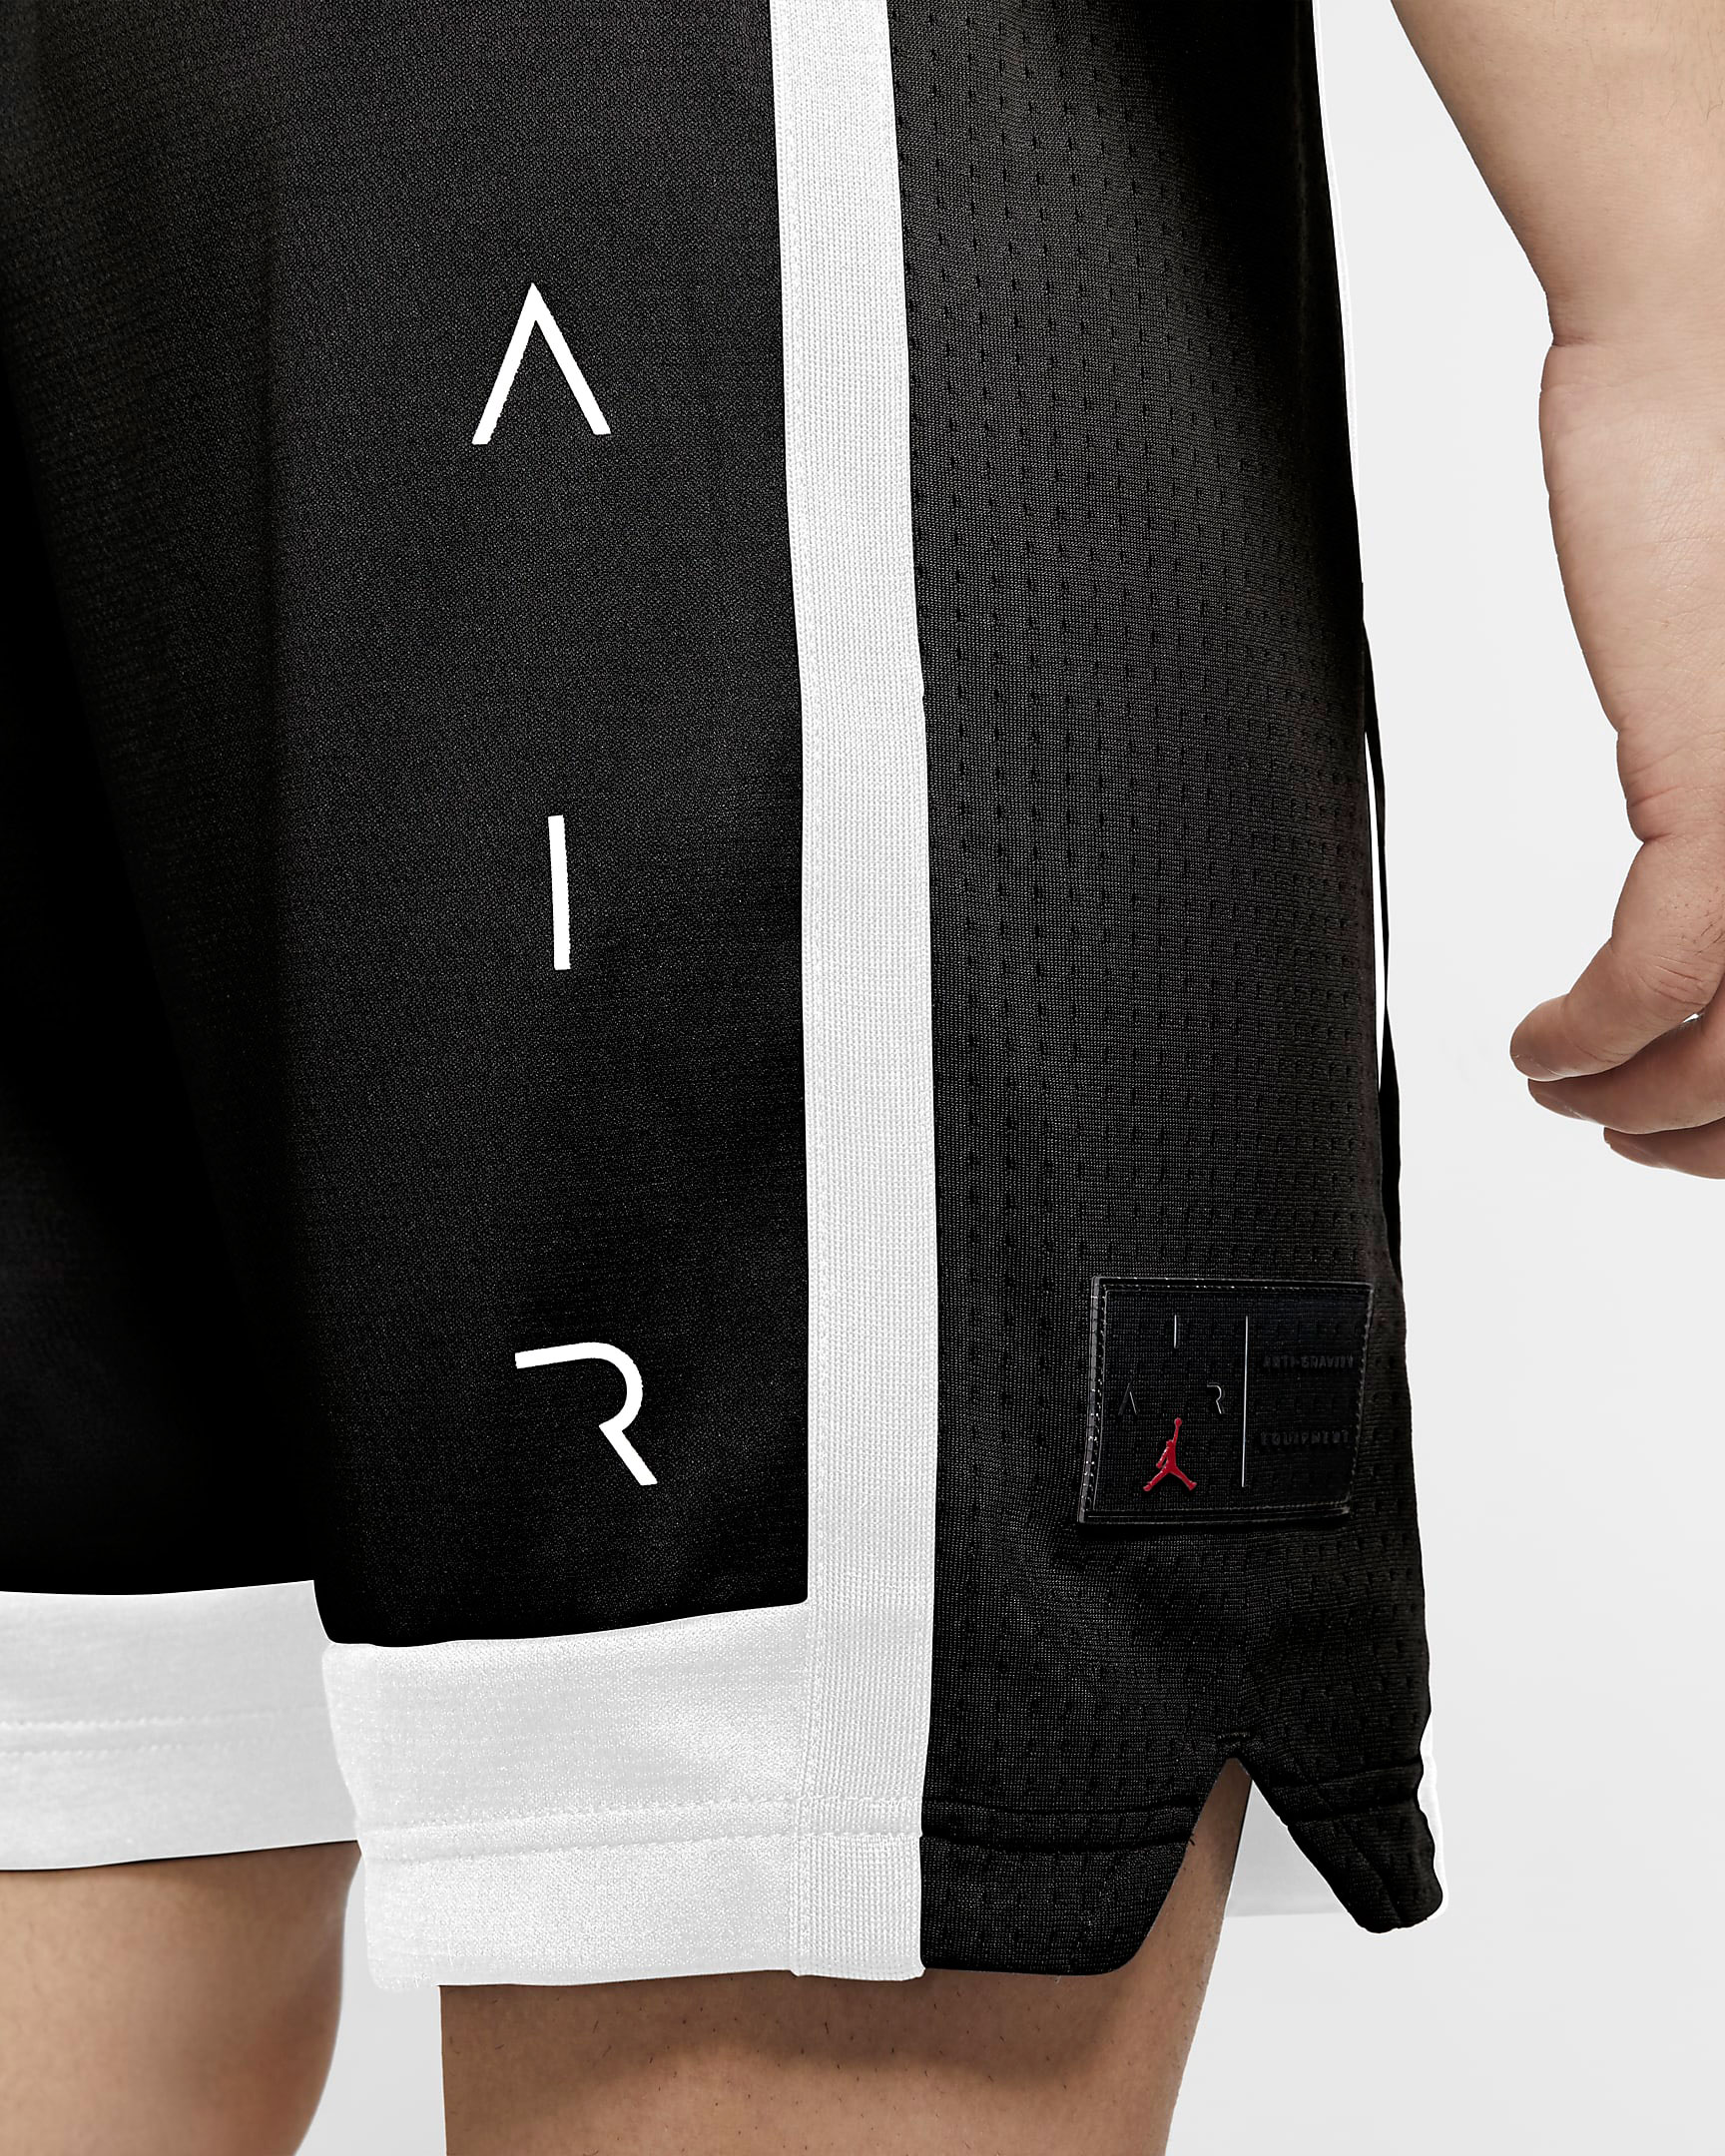 air-jordan-11-jubilee-black-white-jordan-shorts-4